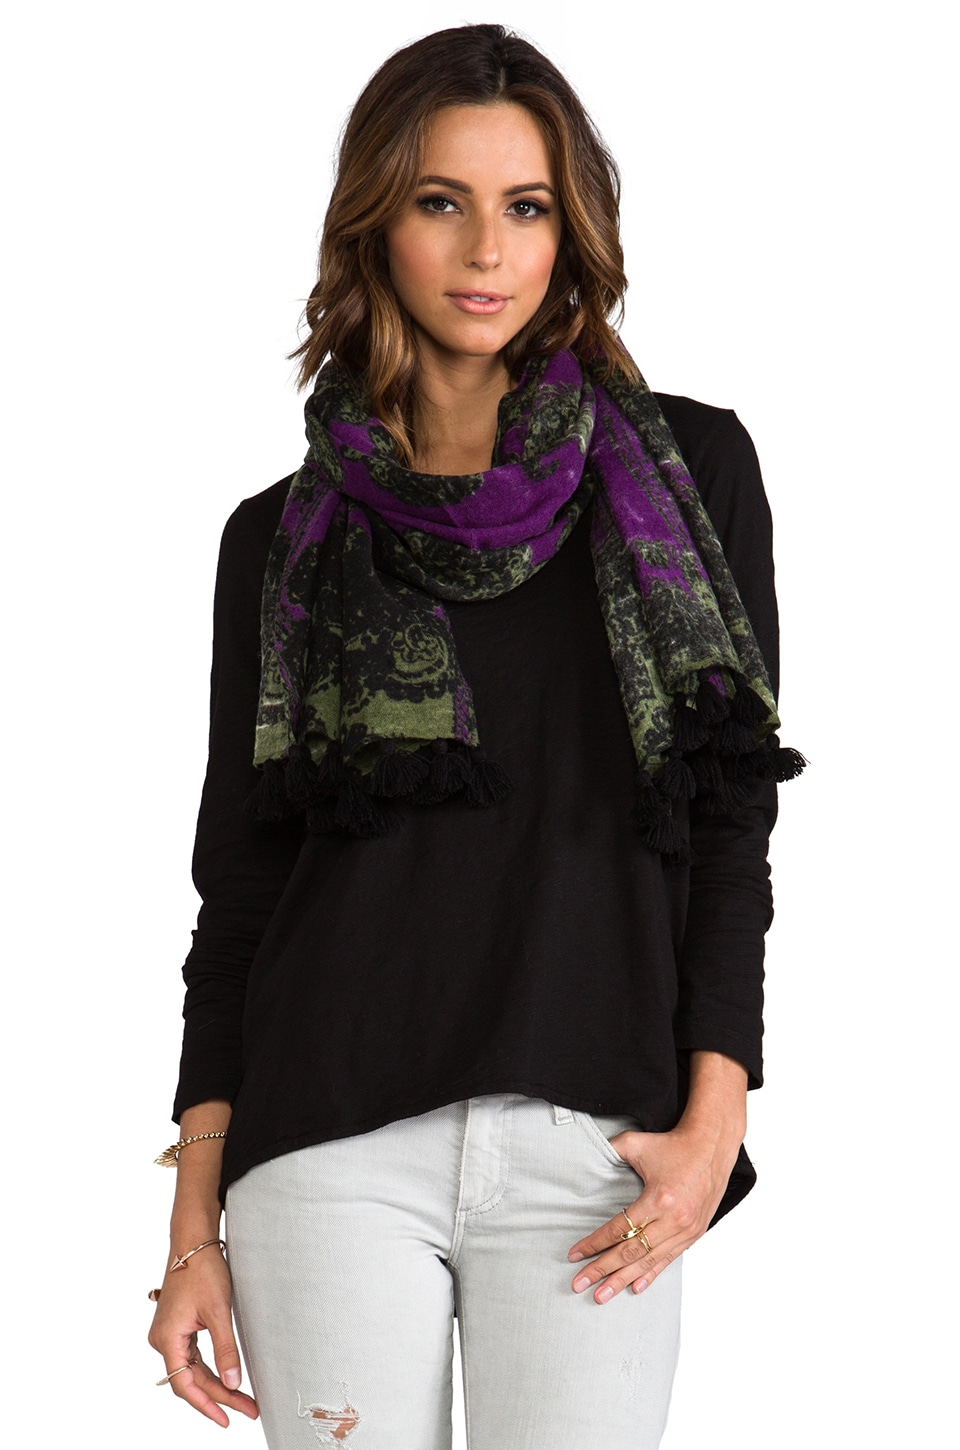 Nanette Lepore Mosaic Print Scarf in Deep Violet